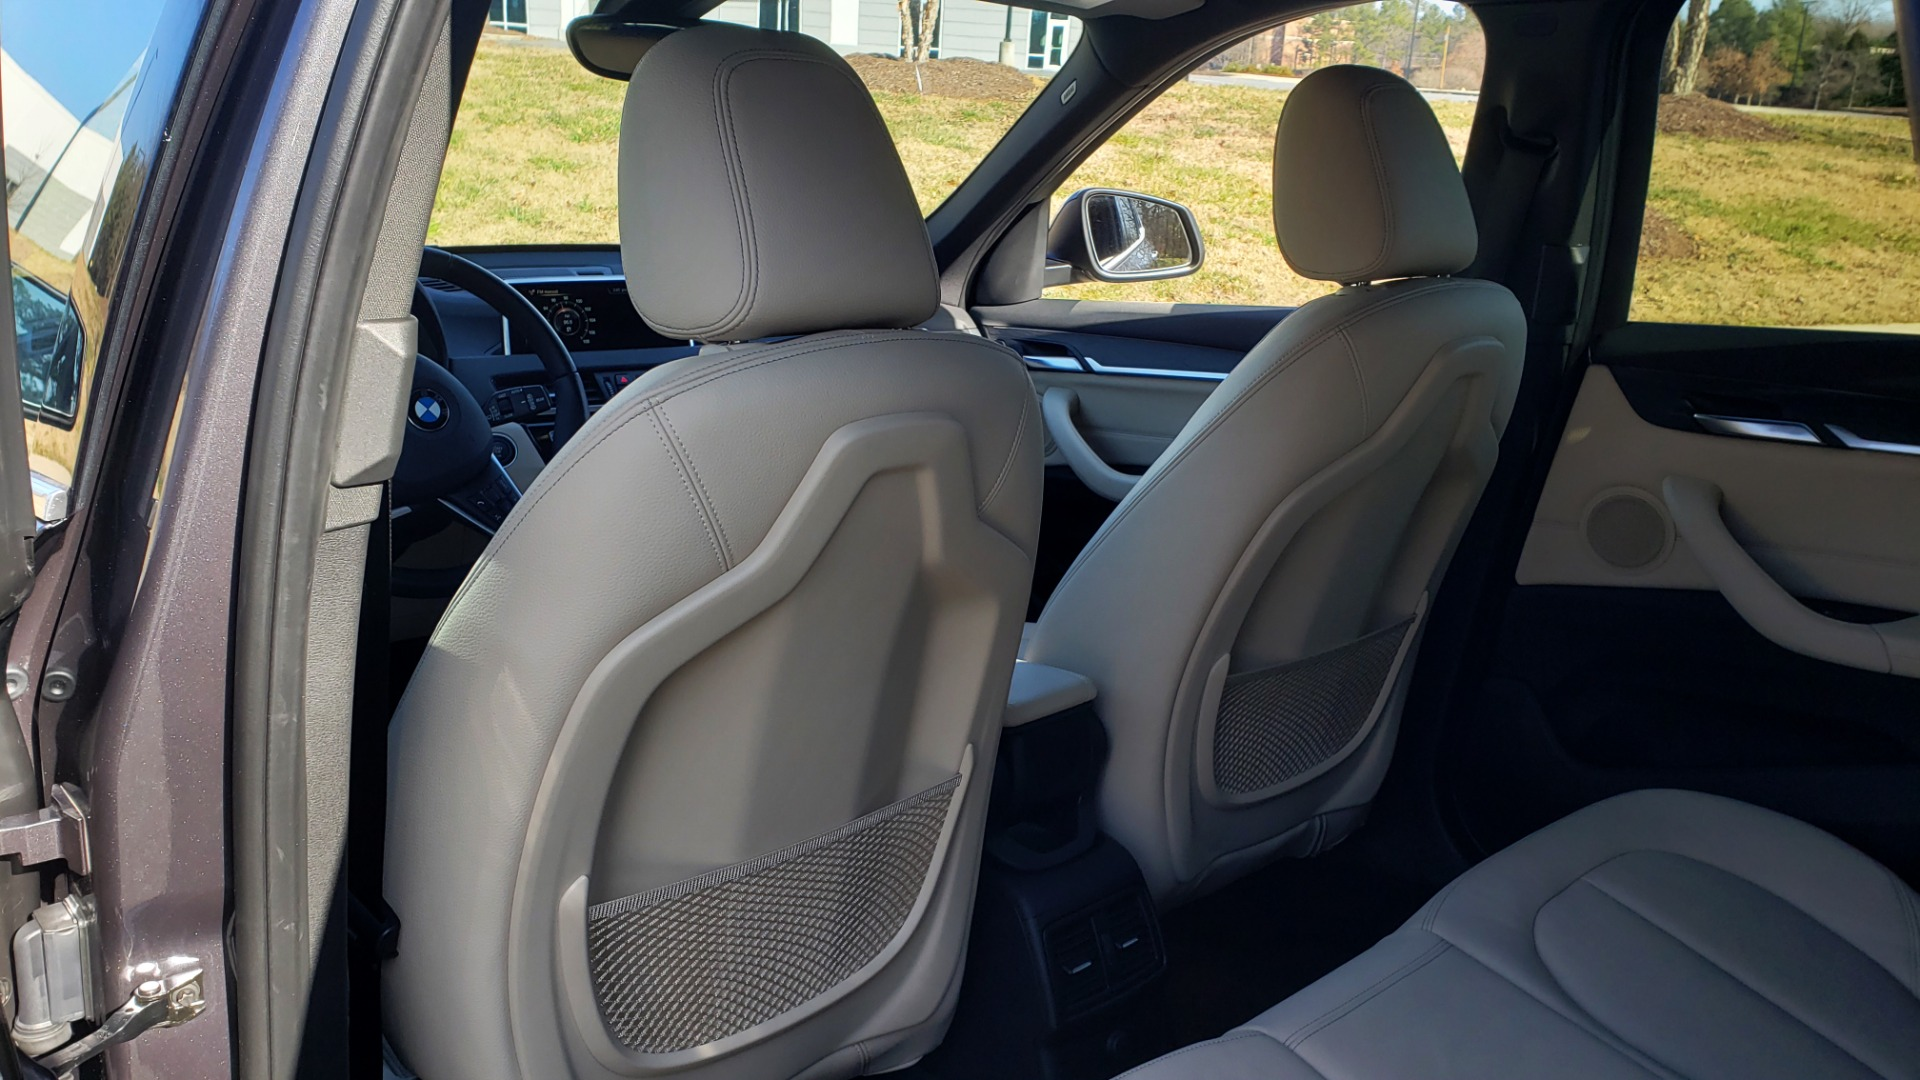 Used 2017 BMW X1 XDRIVE28I / PREM / TECH / DRVR ASST PLUS / COLD WTHR / REARVIEW for sale $26,995 at Formula Imports in Charlotte NC 28227 62